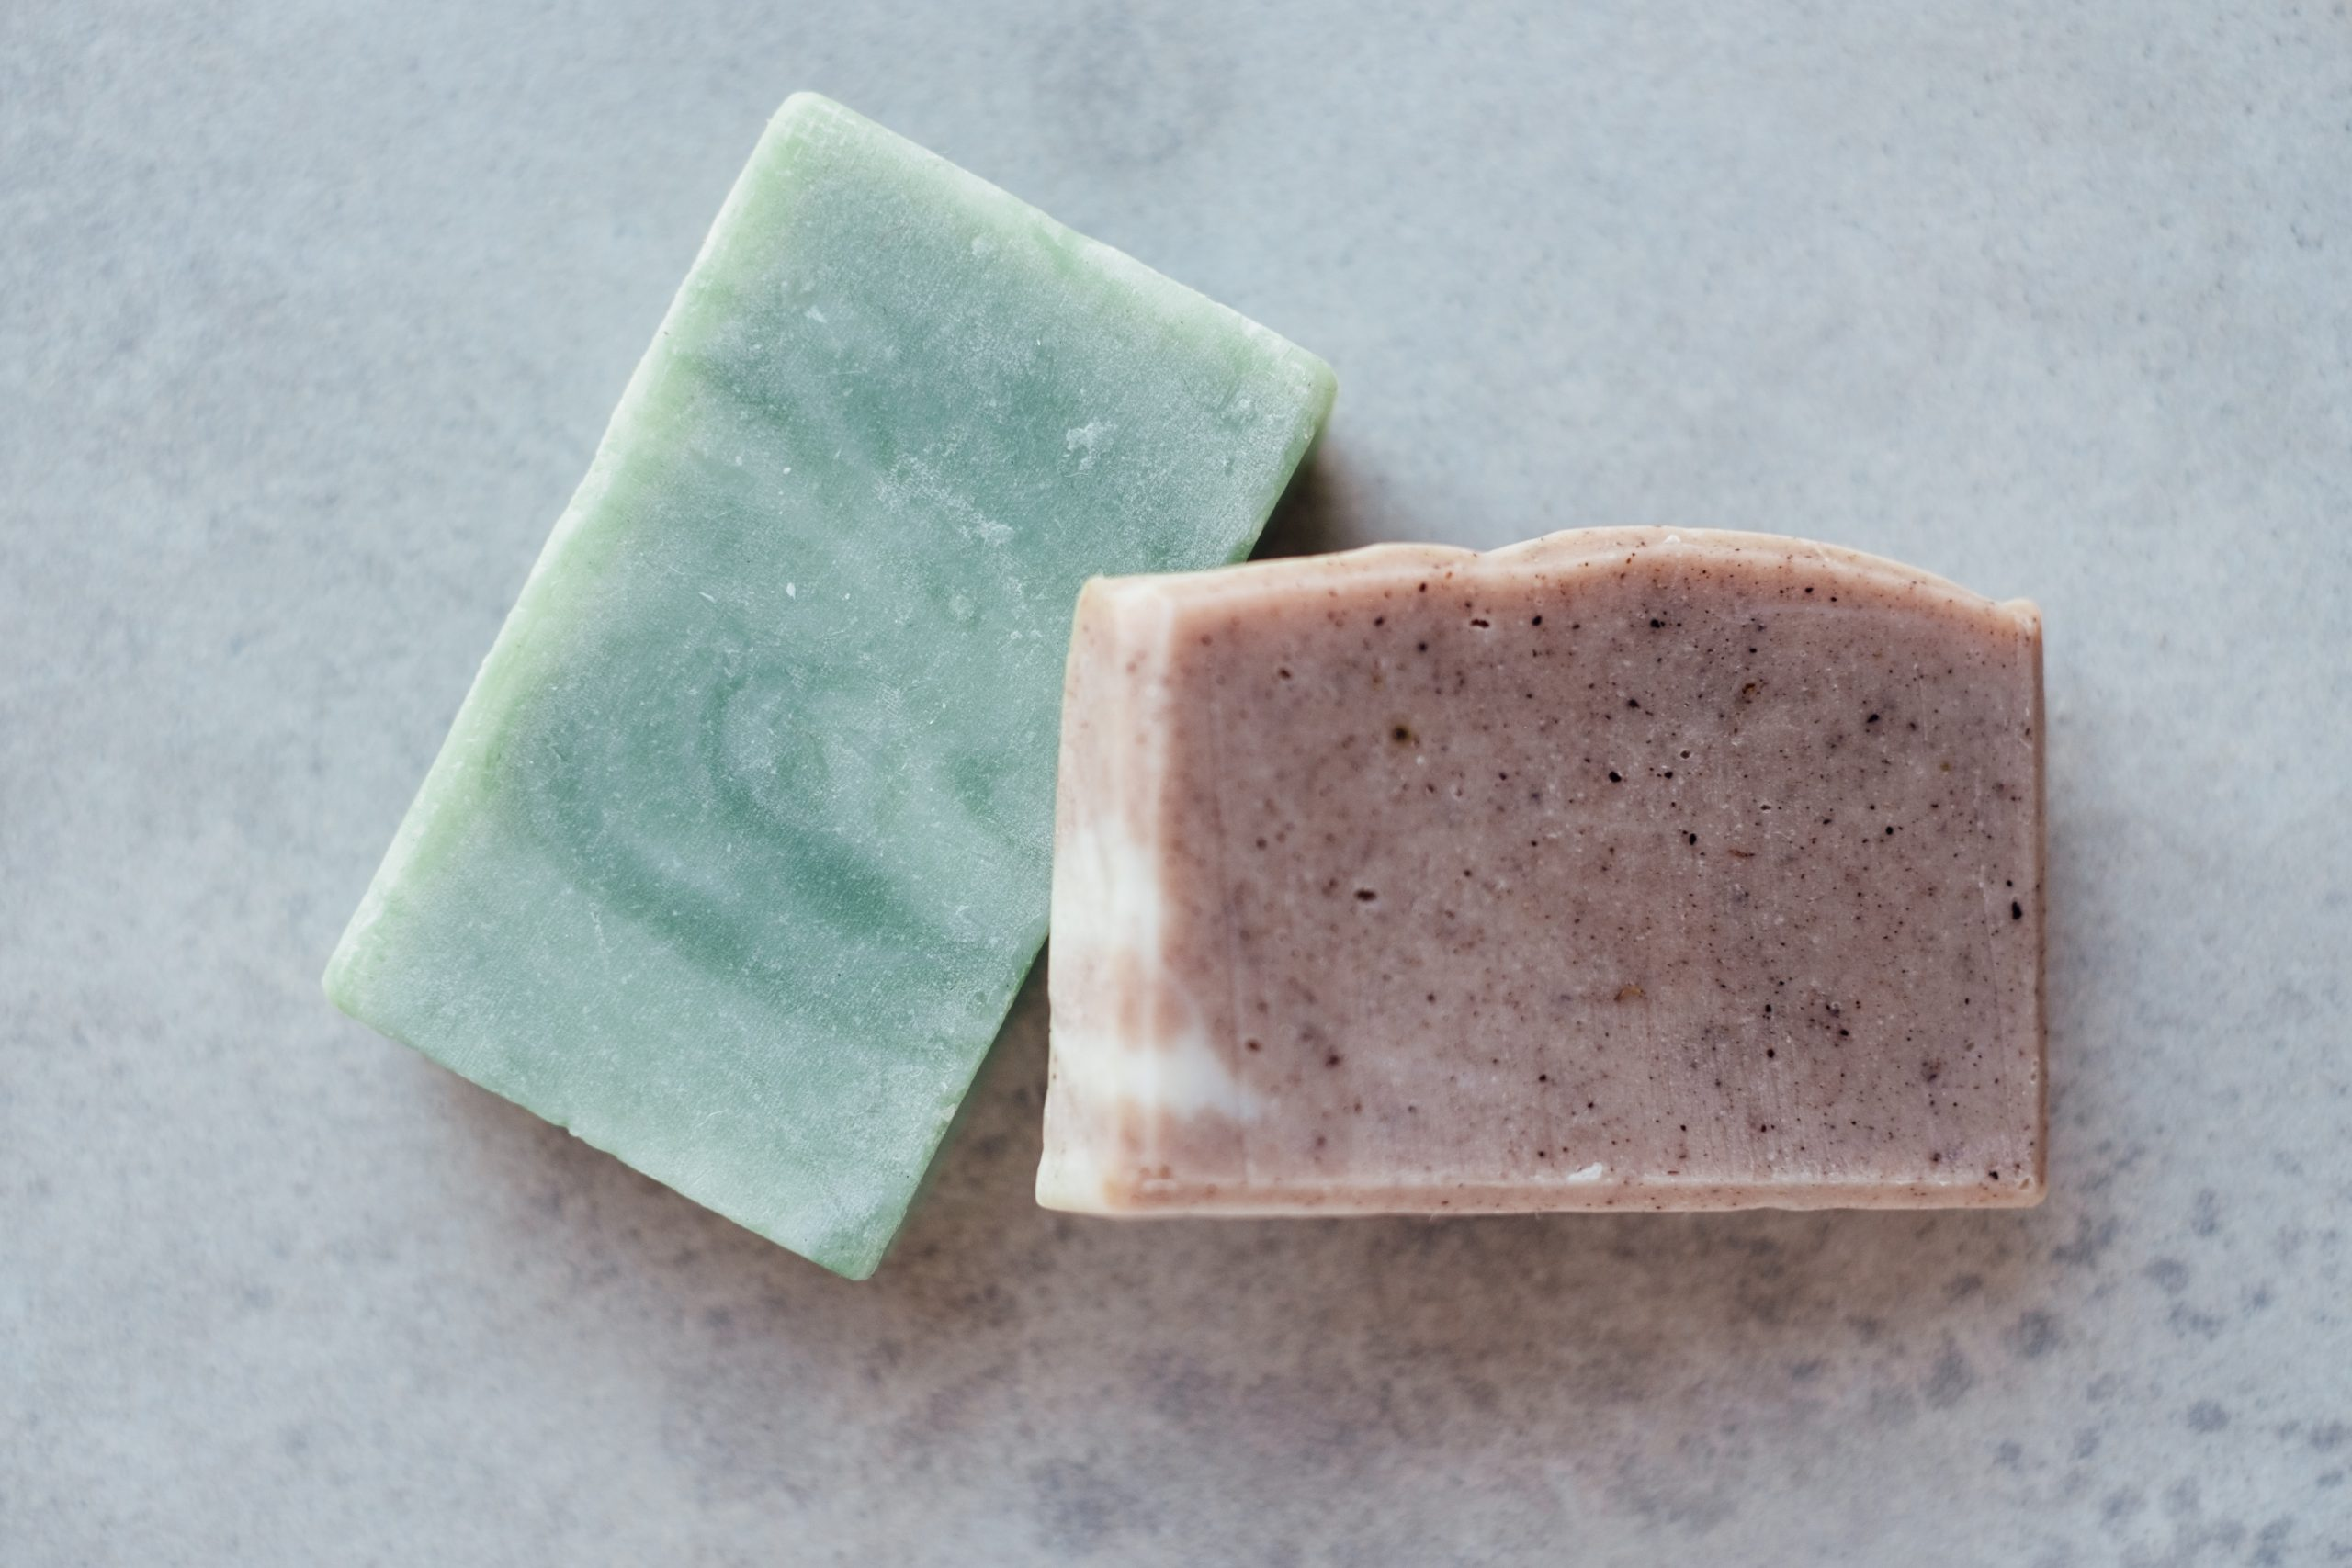 Soap Through the Ages The History and Future of Hygiene and Soap